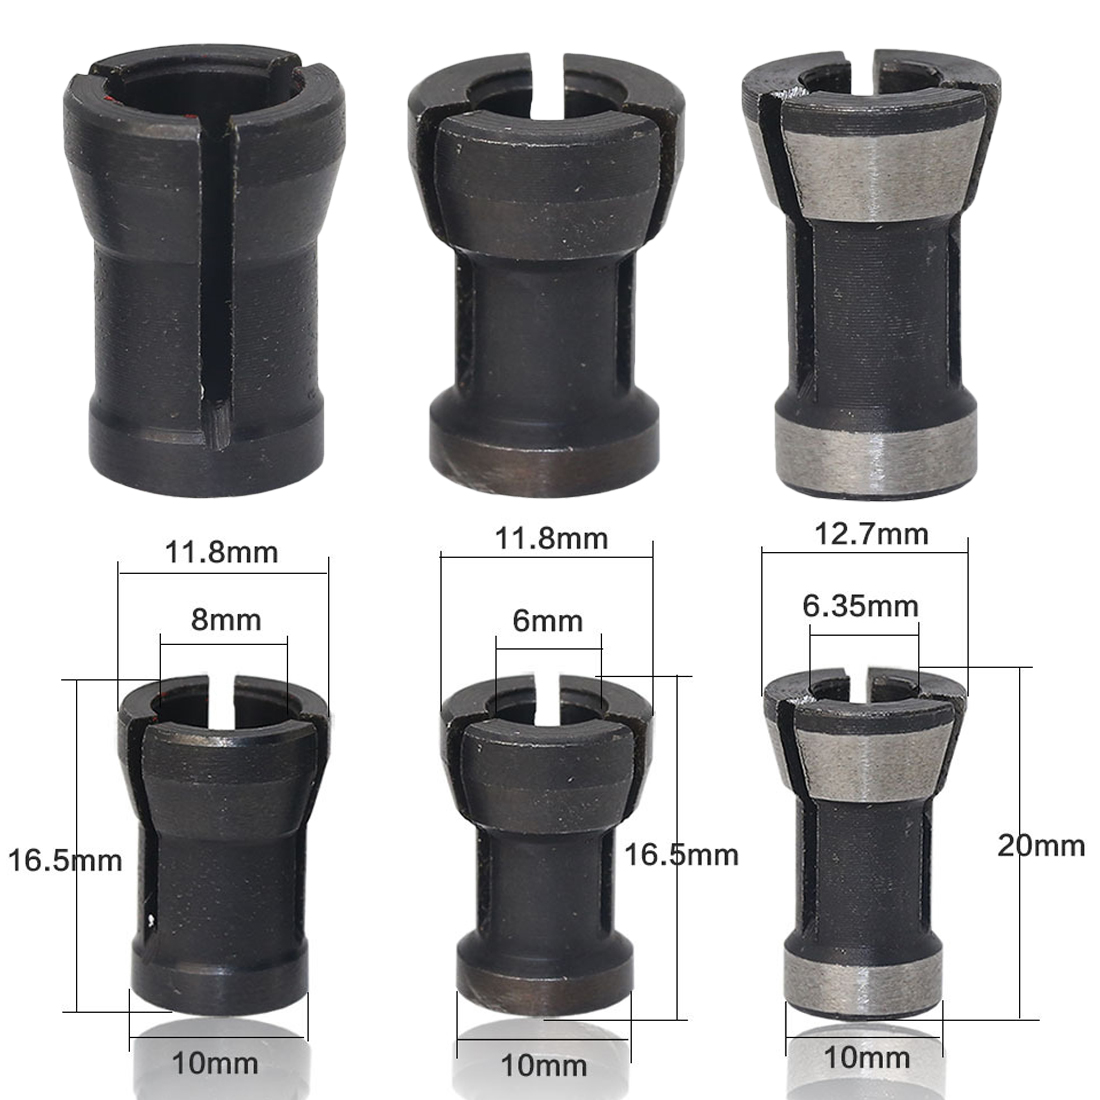 Precision Collet Chuck 6mm/6.35mm/8mm Engraving Trimming Machine Electric Router For Machinery Manufacturing Woodworking Cutter(China)